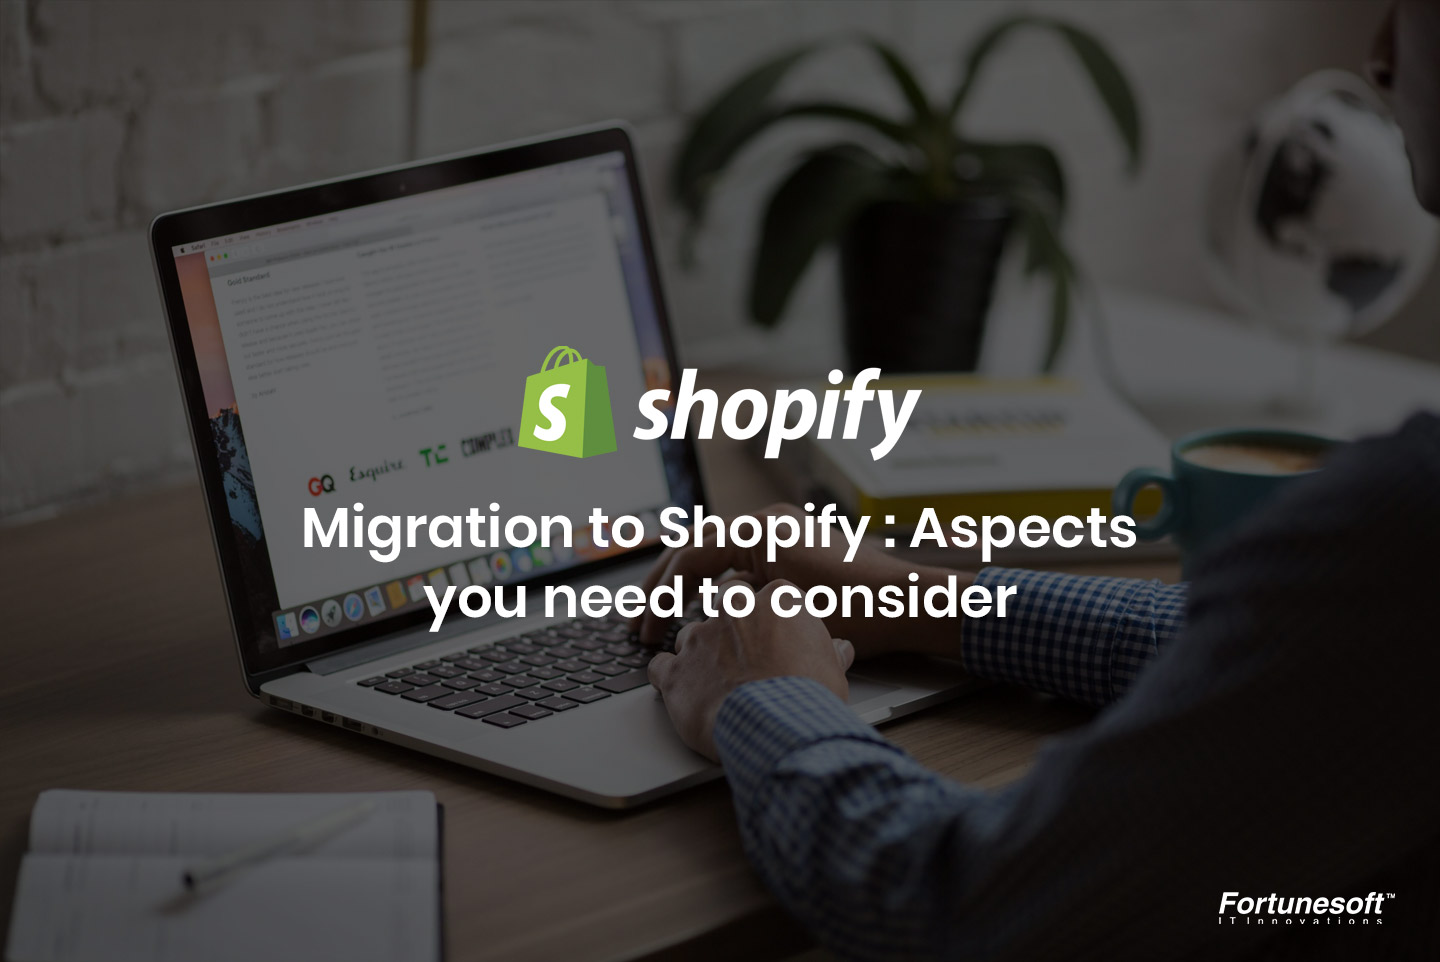 Migration to Shopify : Aspects to consider